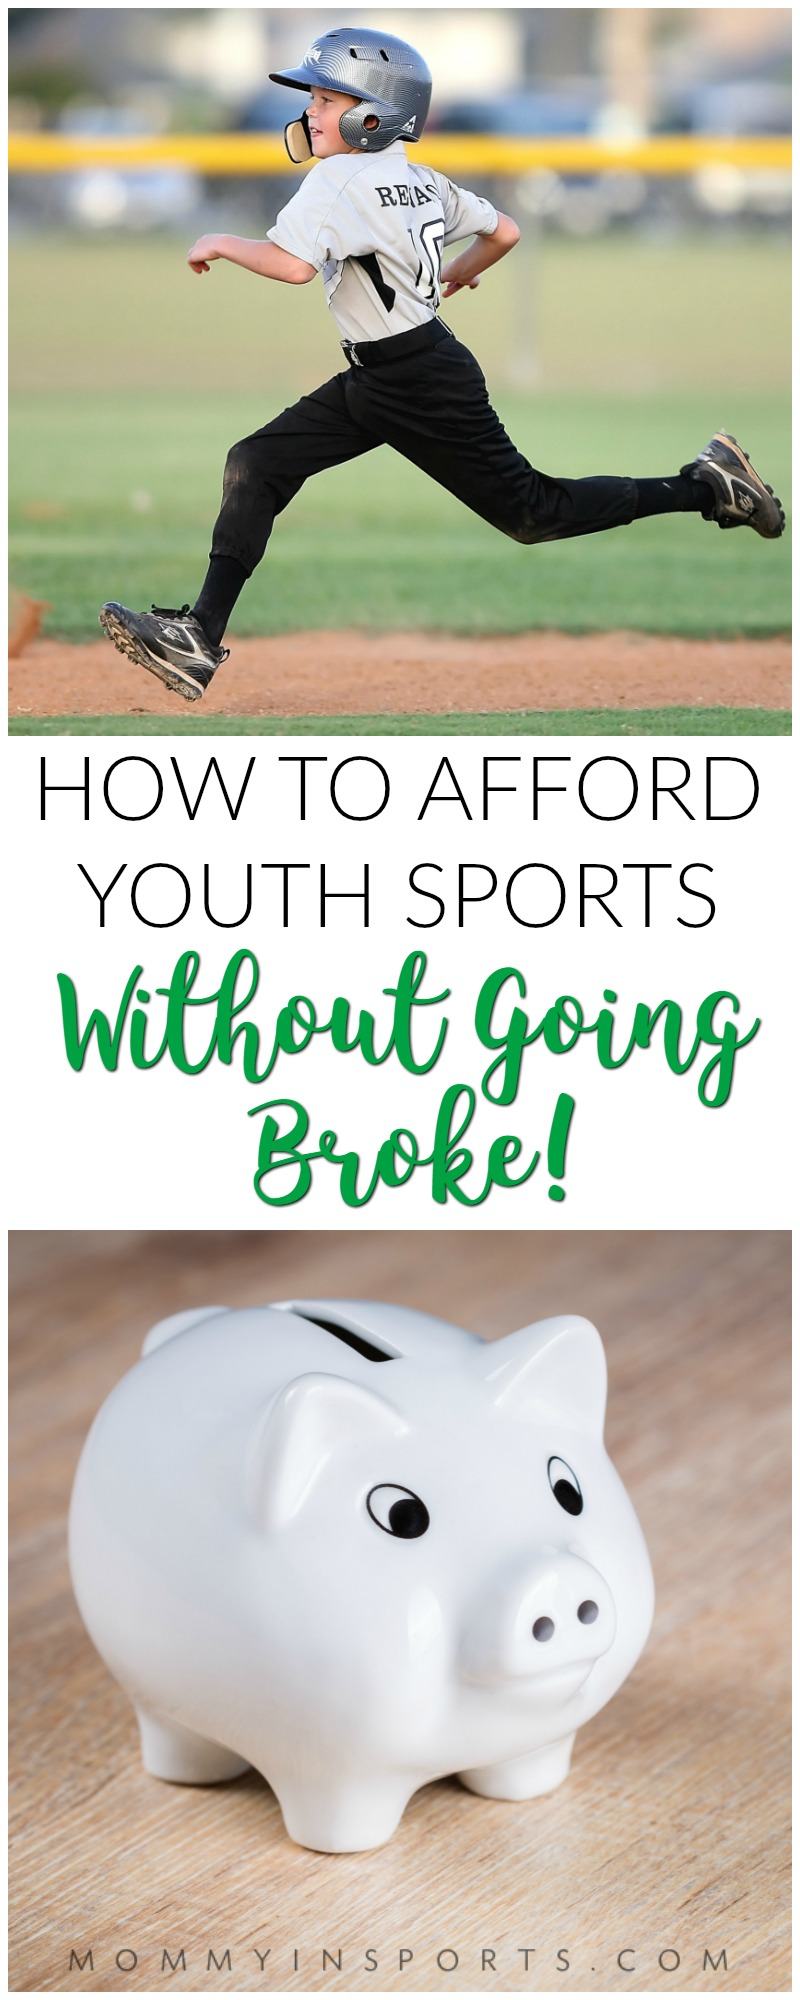 Do you struggle with the high costs of youth sports, plus all the equipment and clothing needed? Check out these tips to help families afford sports!